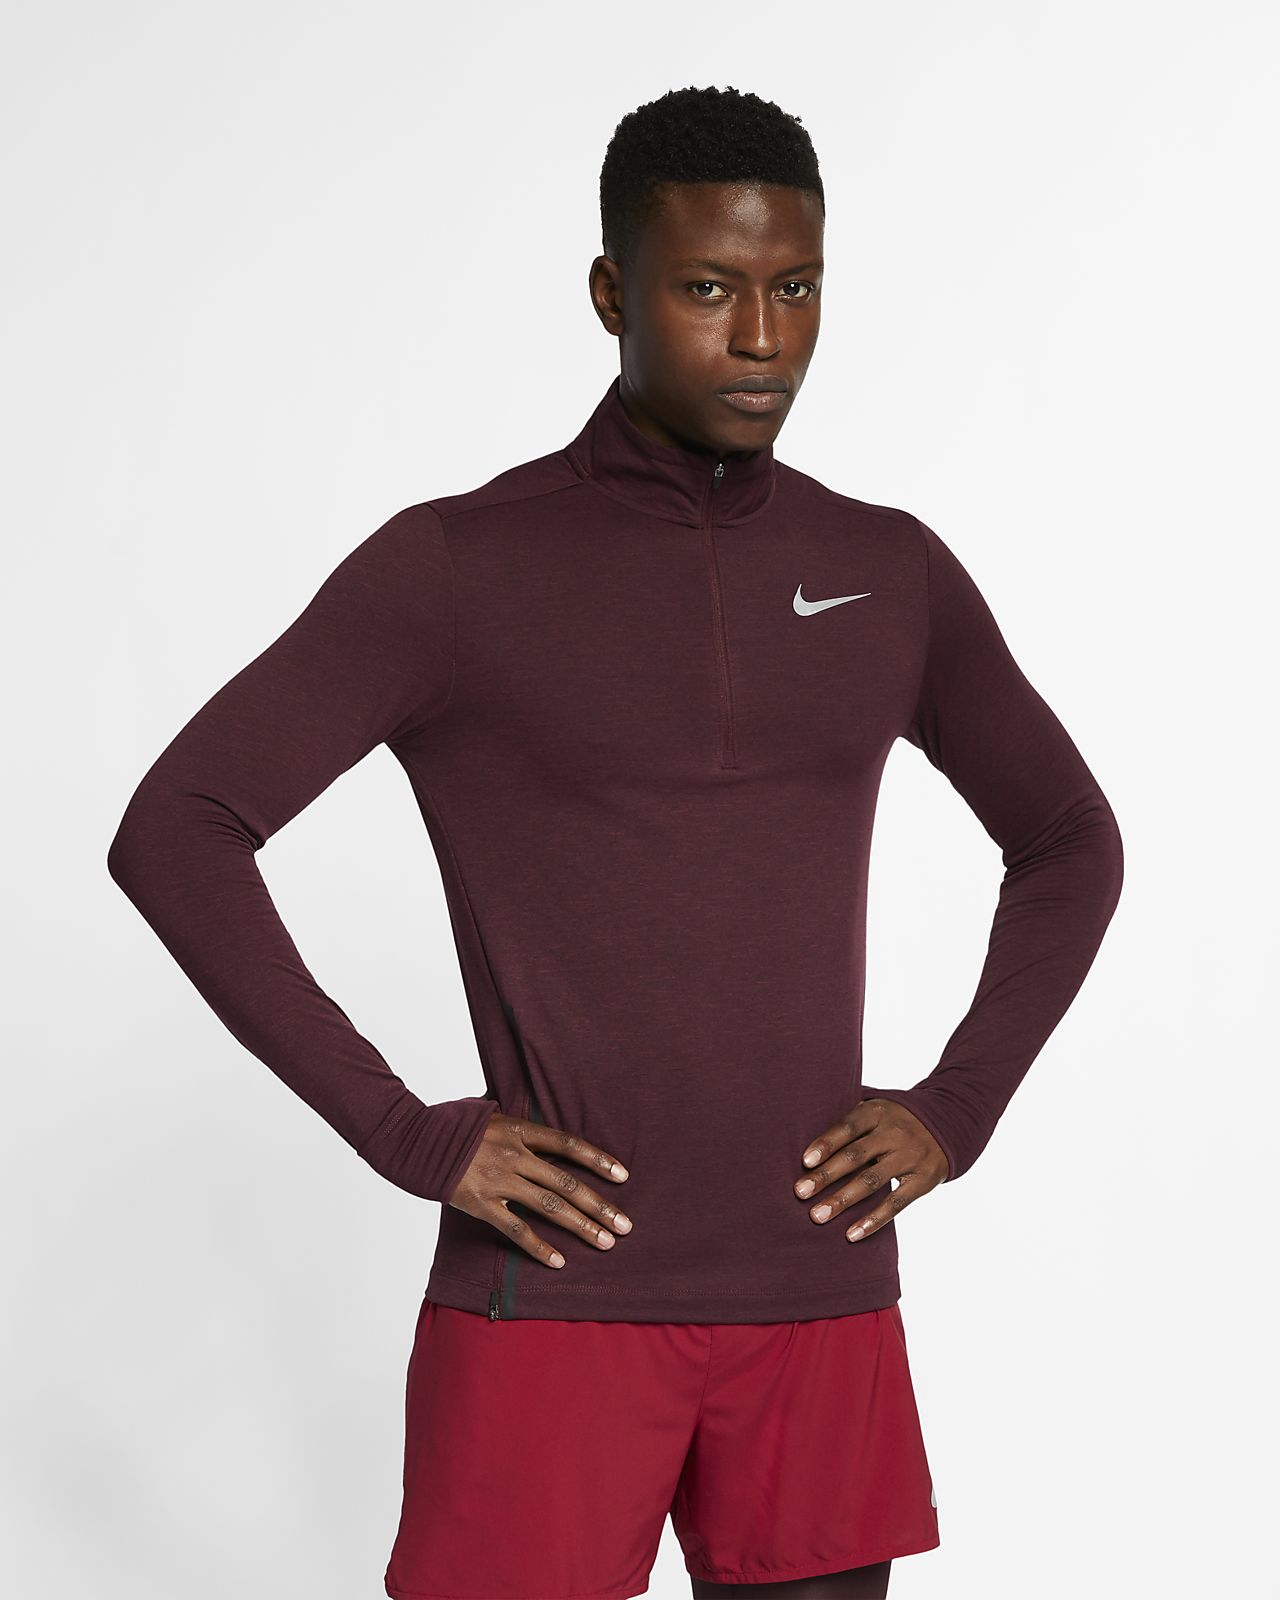 882cad92 Nike Therma Sphere Element Men's 1/2-Zip Running Top. Nike.com